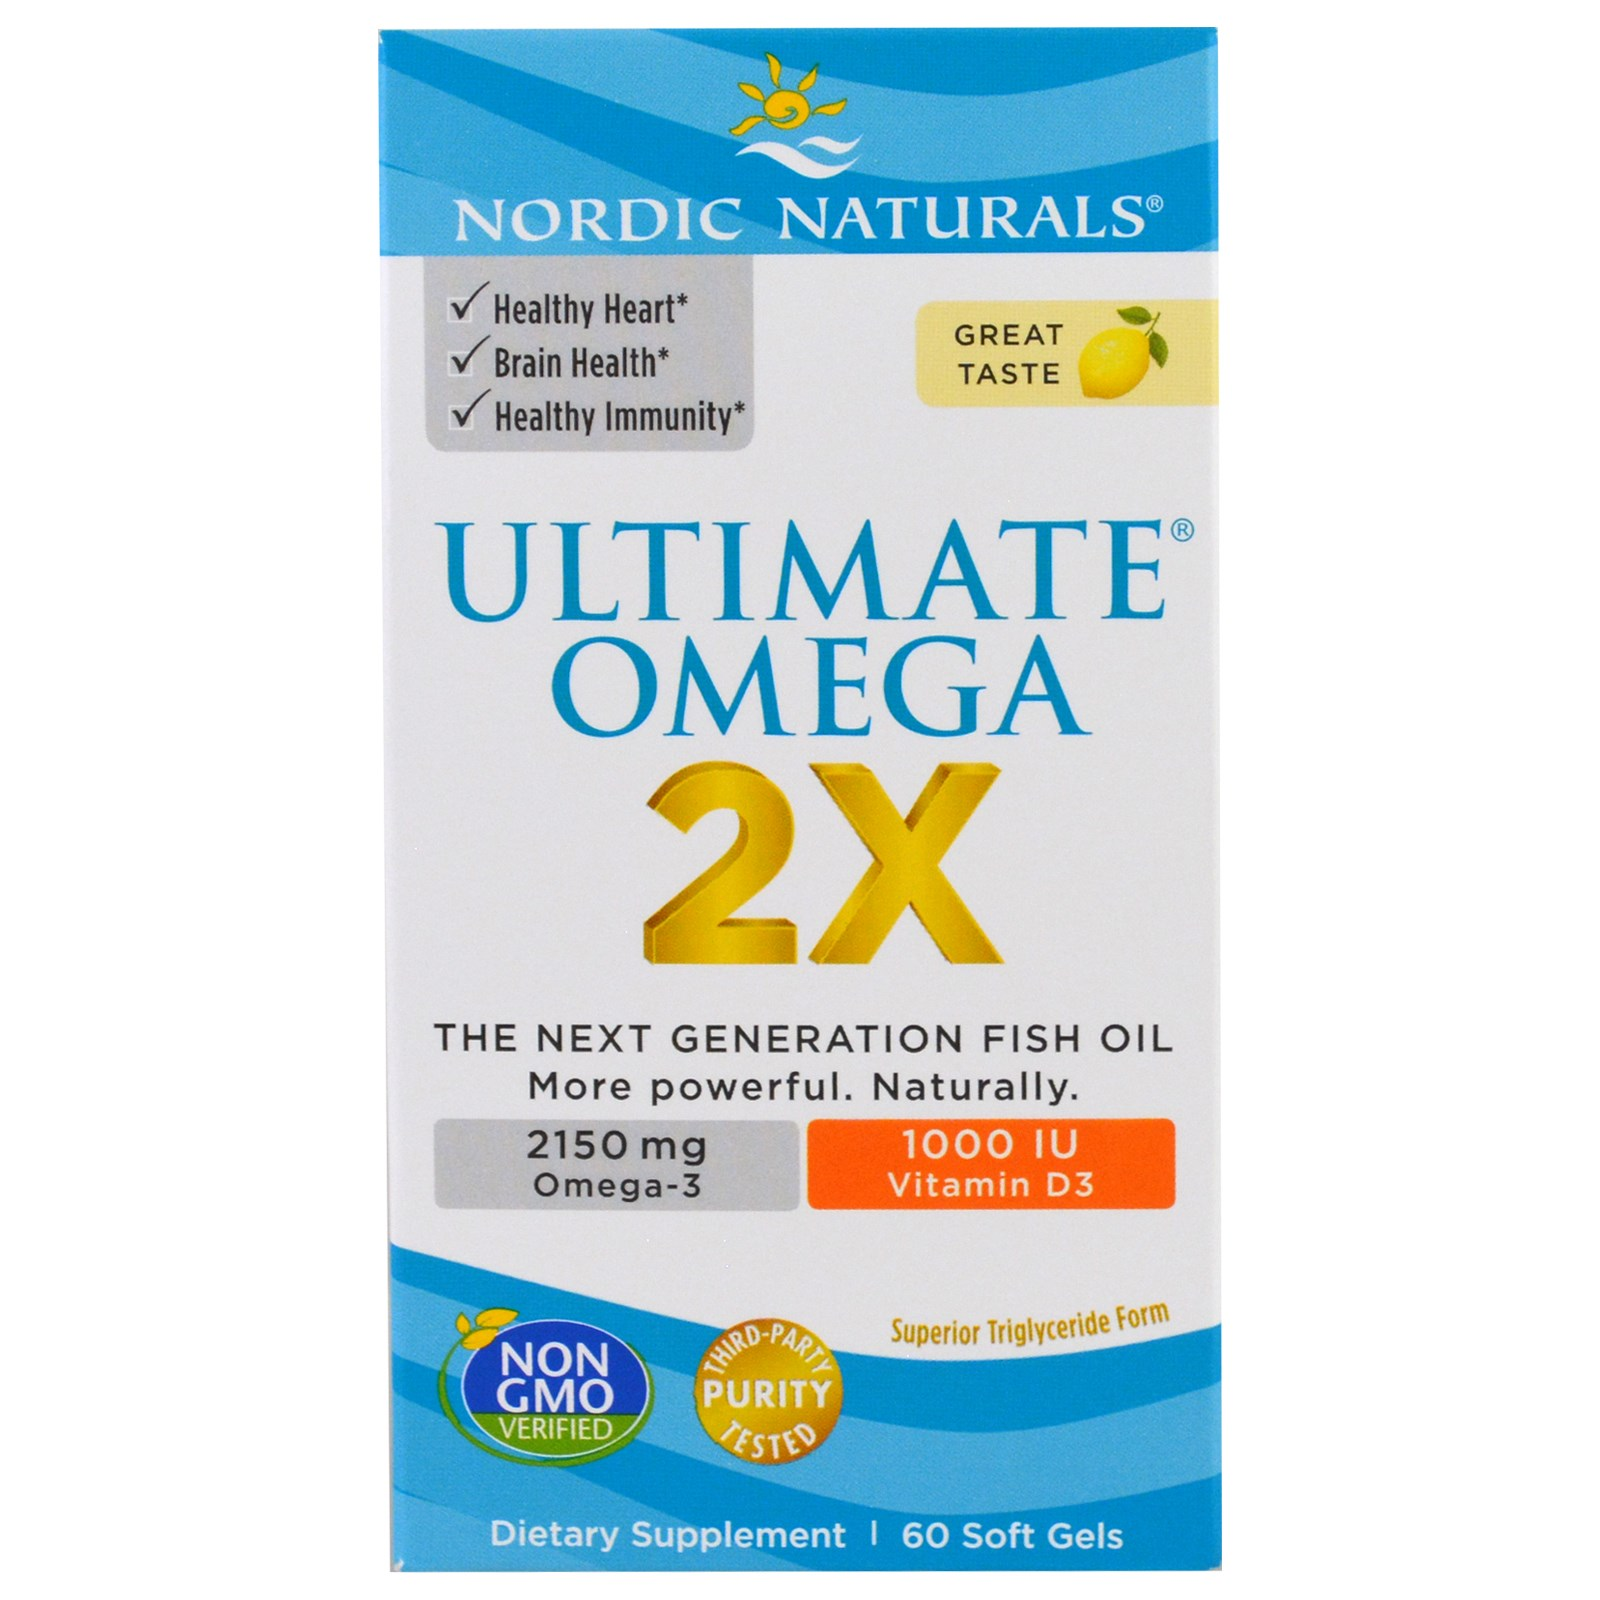 Nordic naturals ultimate omega 2x lemon 60 soft gels for Nordic naturals fish oil liquid